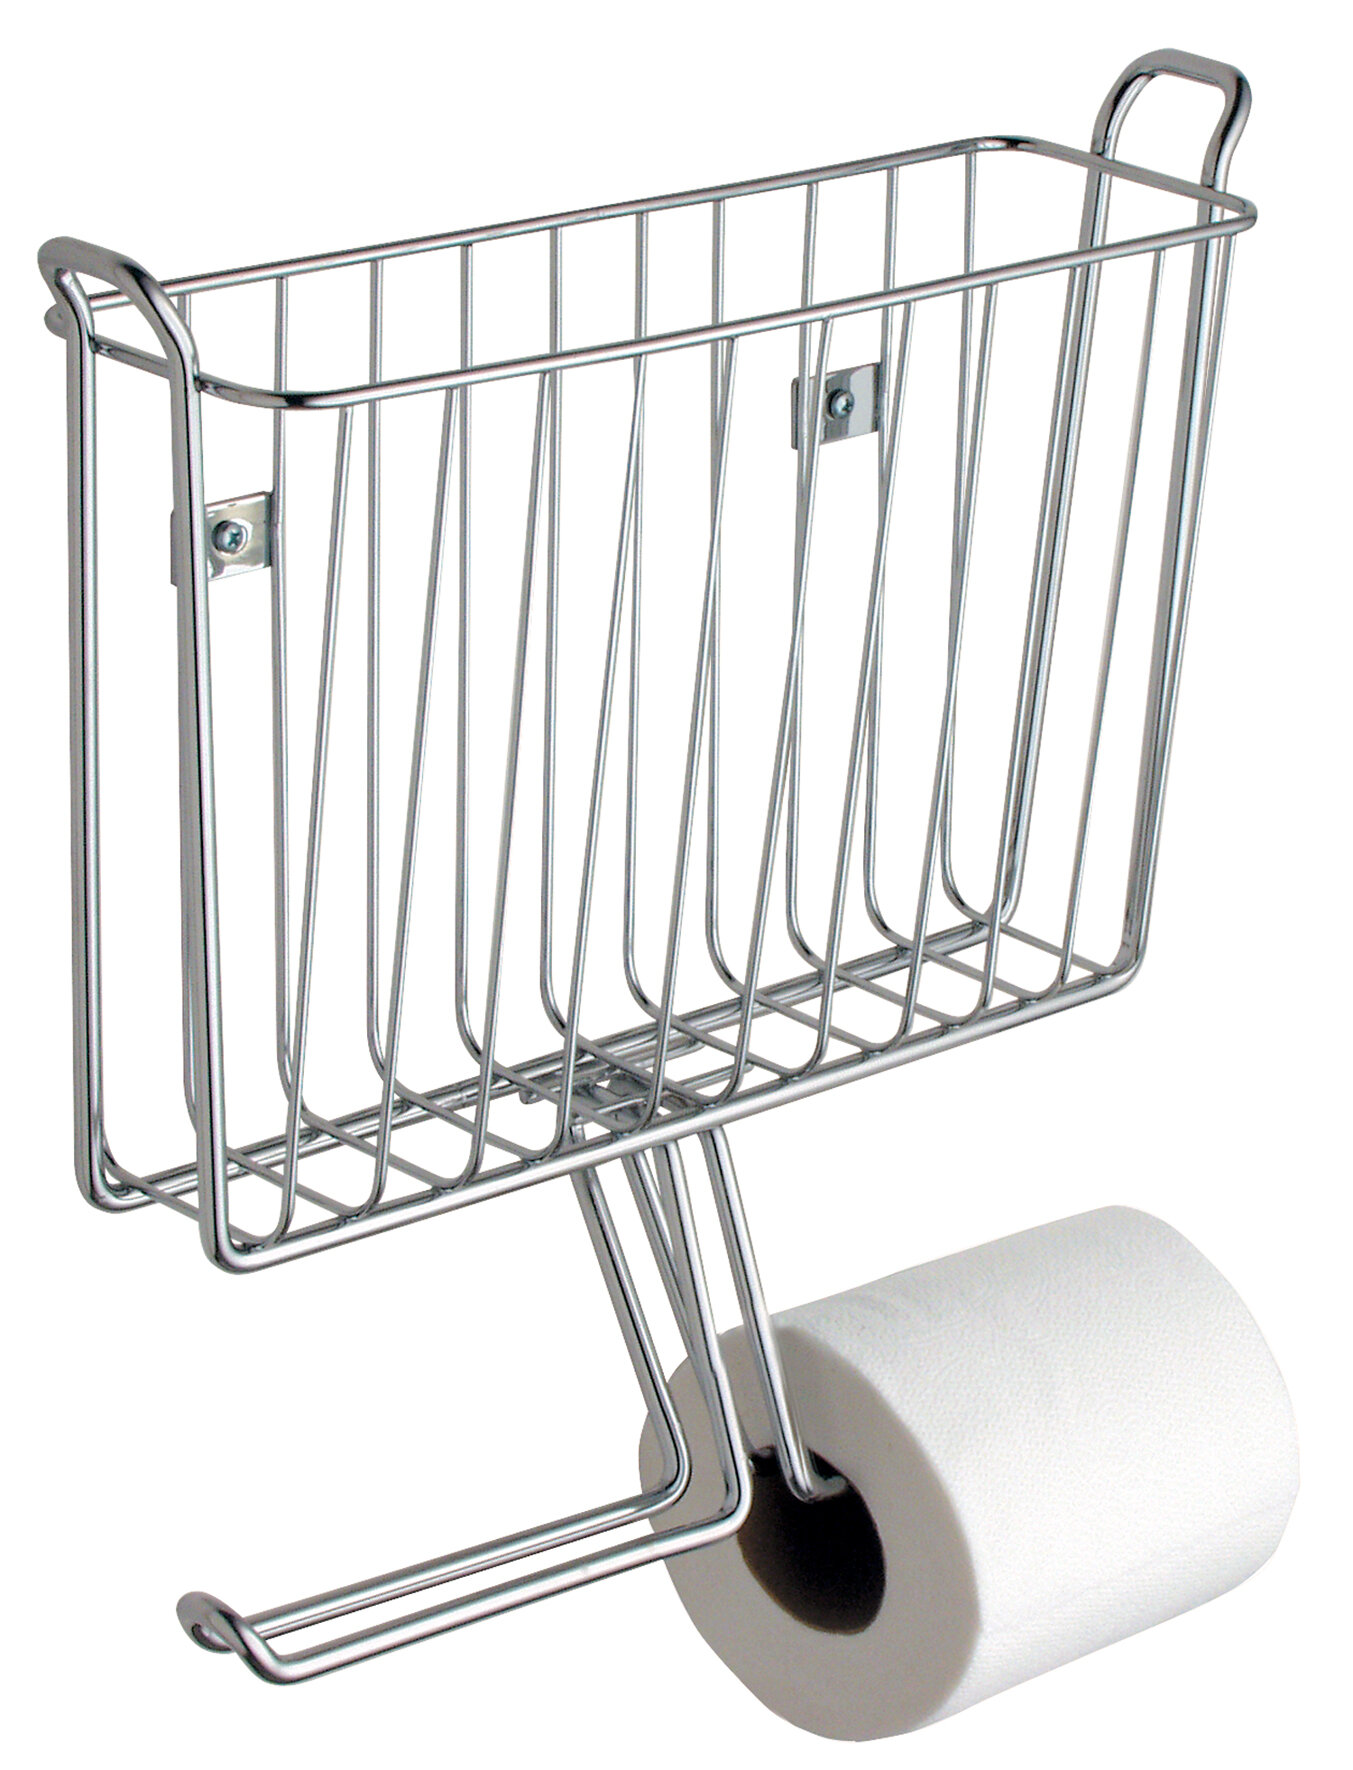 InterDesign Classico Wall Mounted Magazine Rack And Toilet Paper Holder